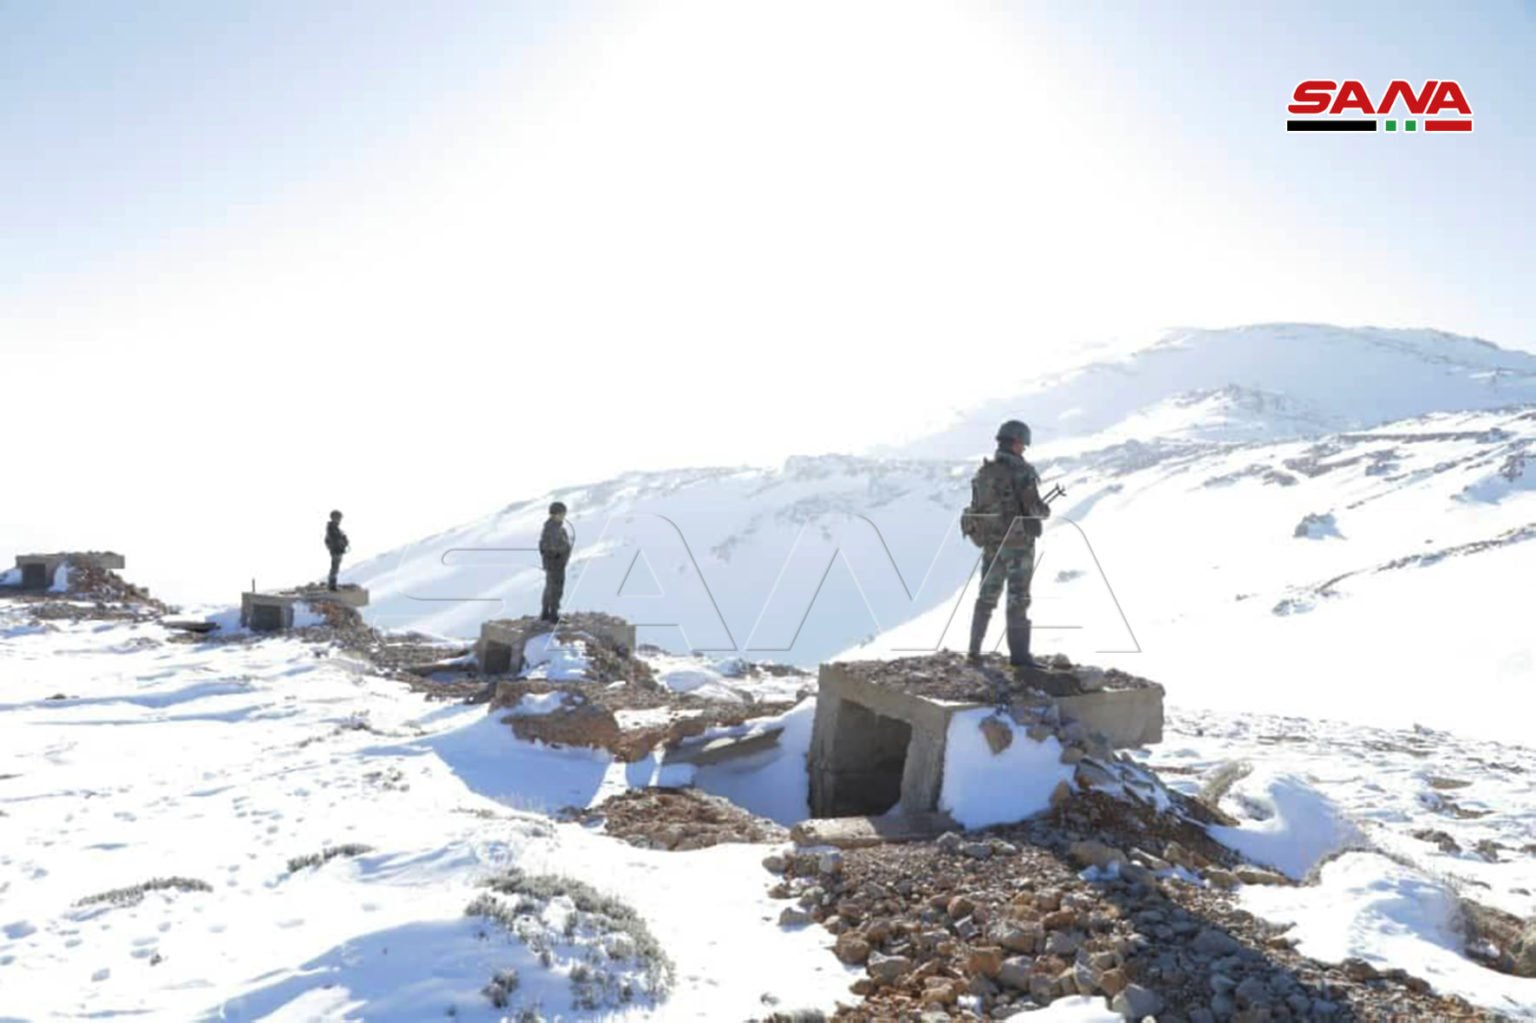 Personnel of the Syrian regime in Mount Hermon, which range covers the Syria-Lebanon- Palestine tri-border region—25 January 2021 (SANA)